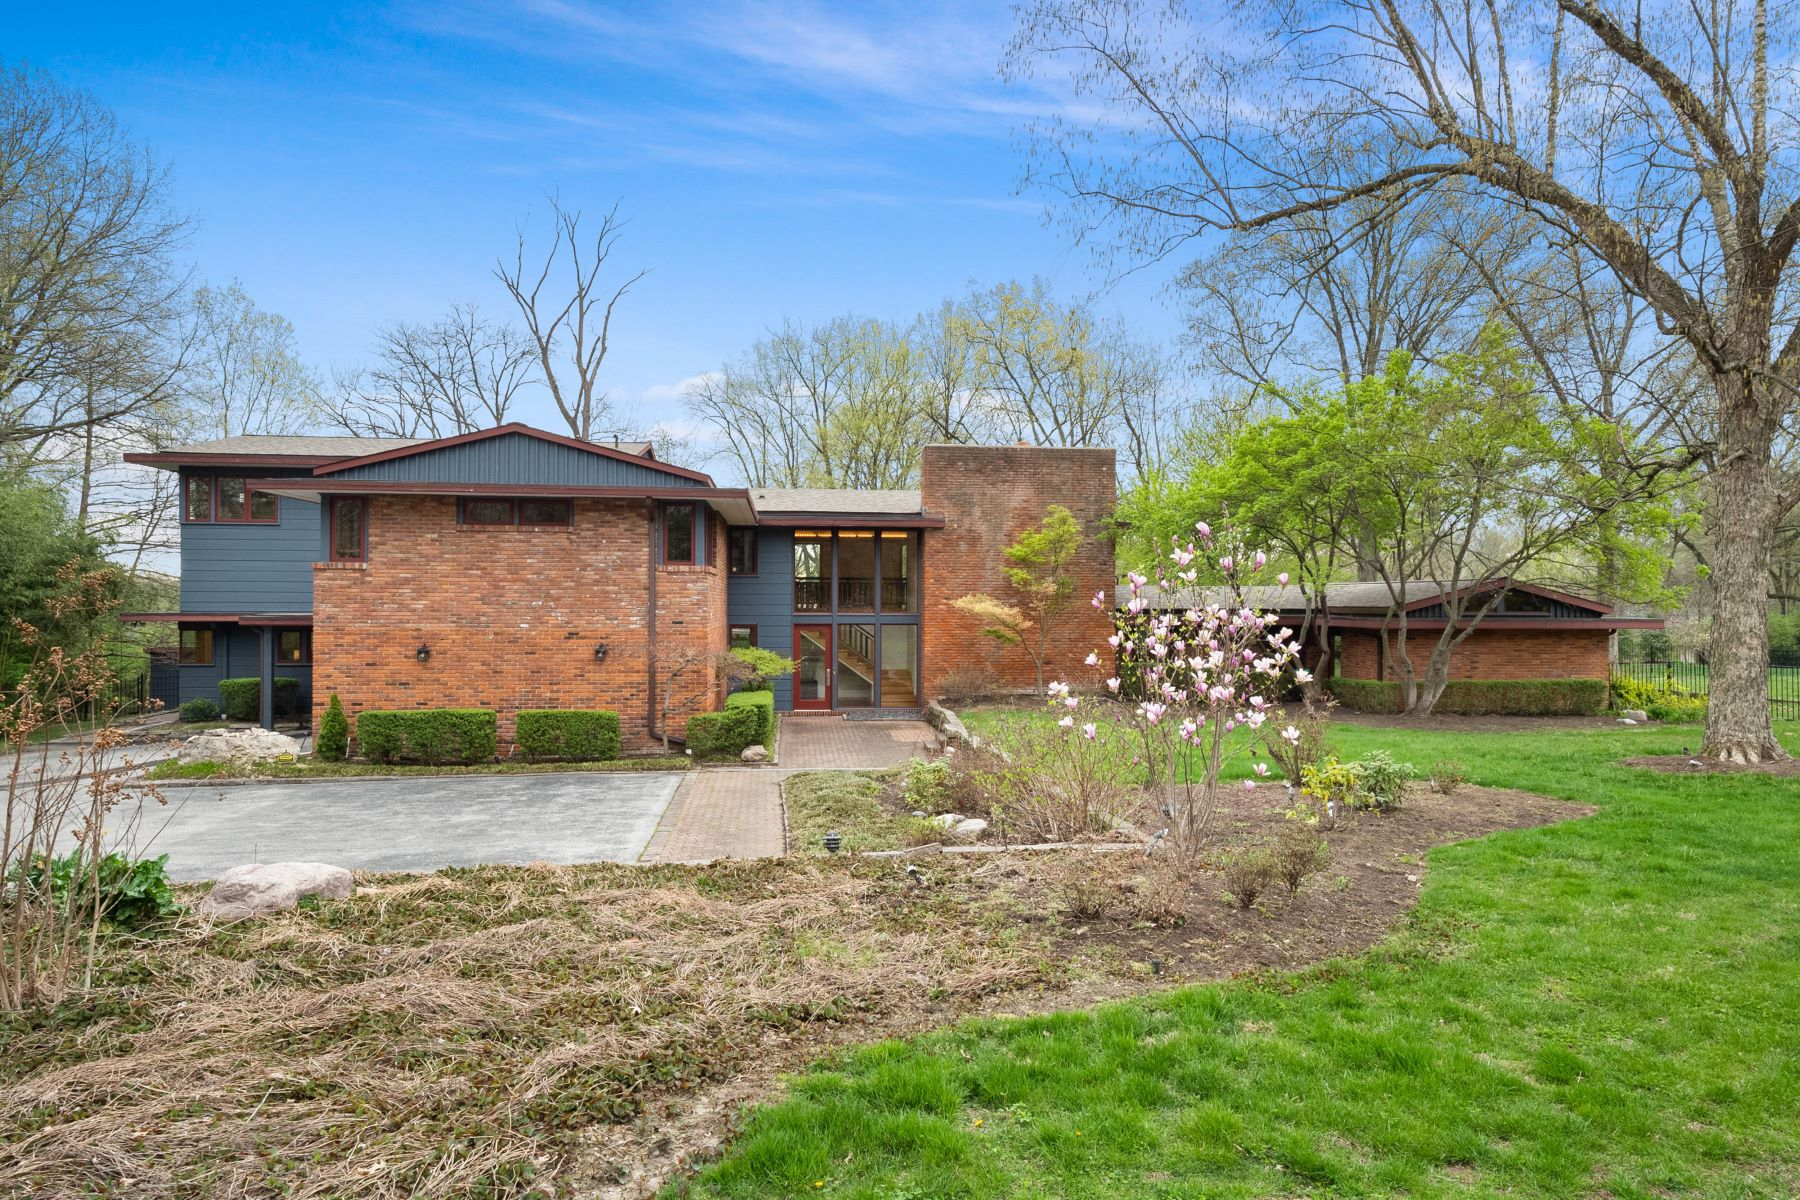 Single Family Homes for Active at Important Mid-Century Home Designed by Ted Christner 1160 Lay Road Richmond Heights, Missouri 63124 United States